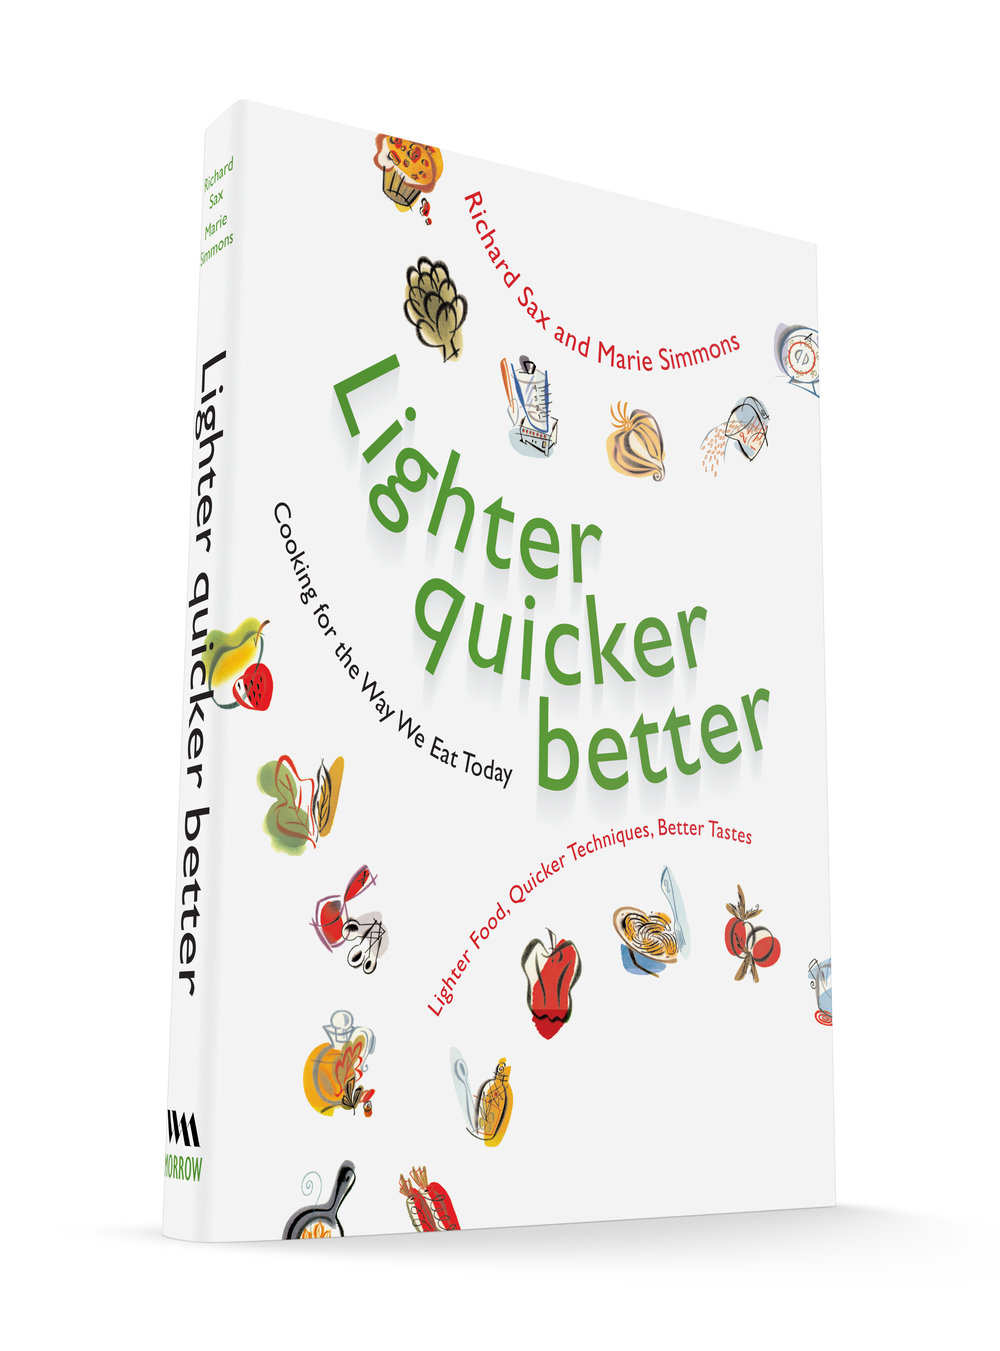 Lighter, Quicker Better. Published by William Morrow and Company